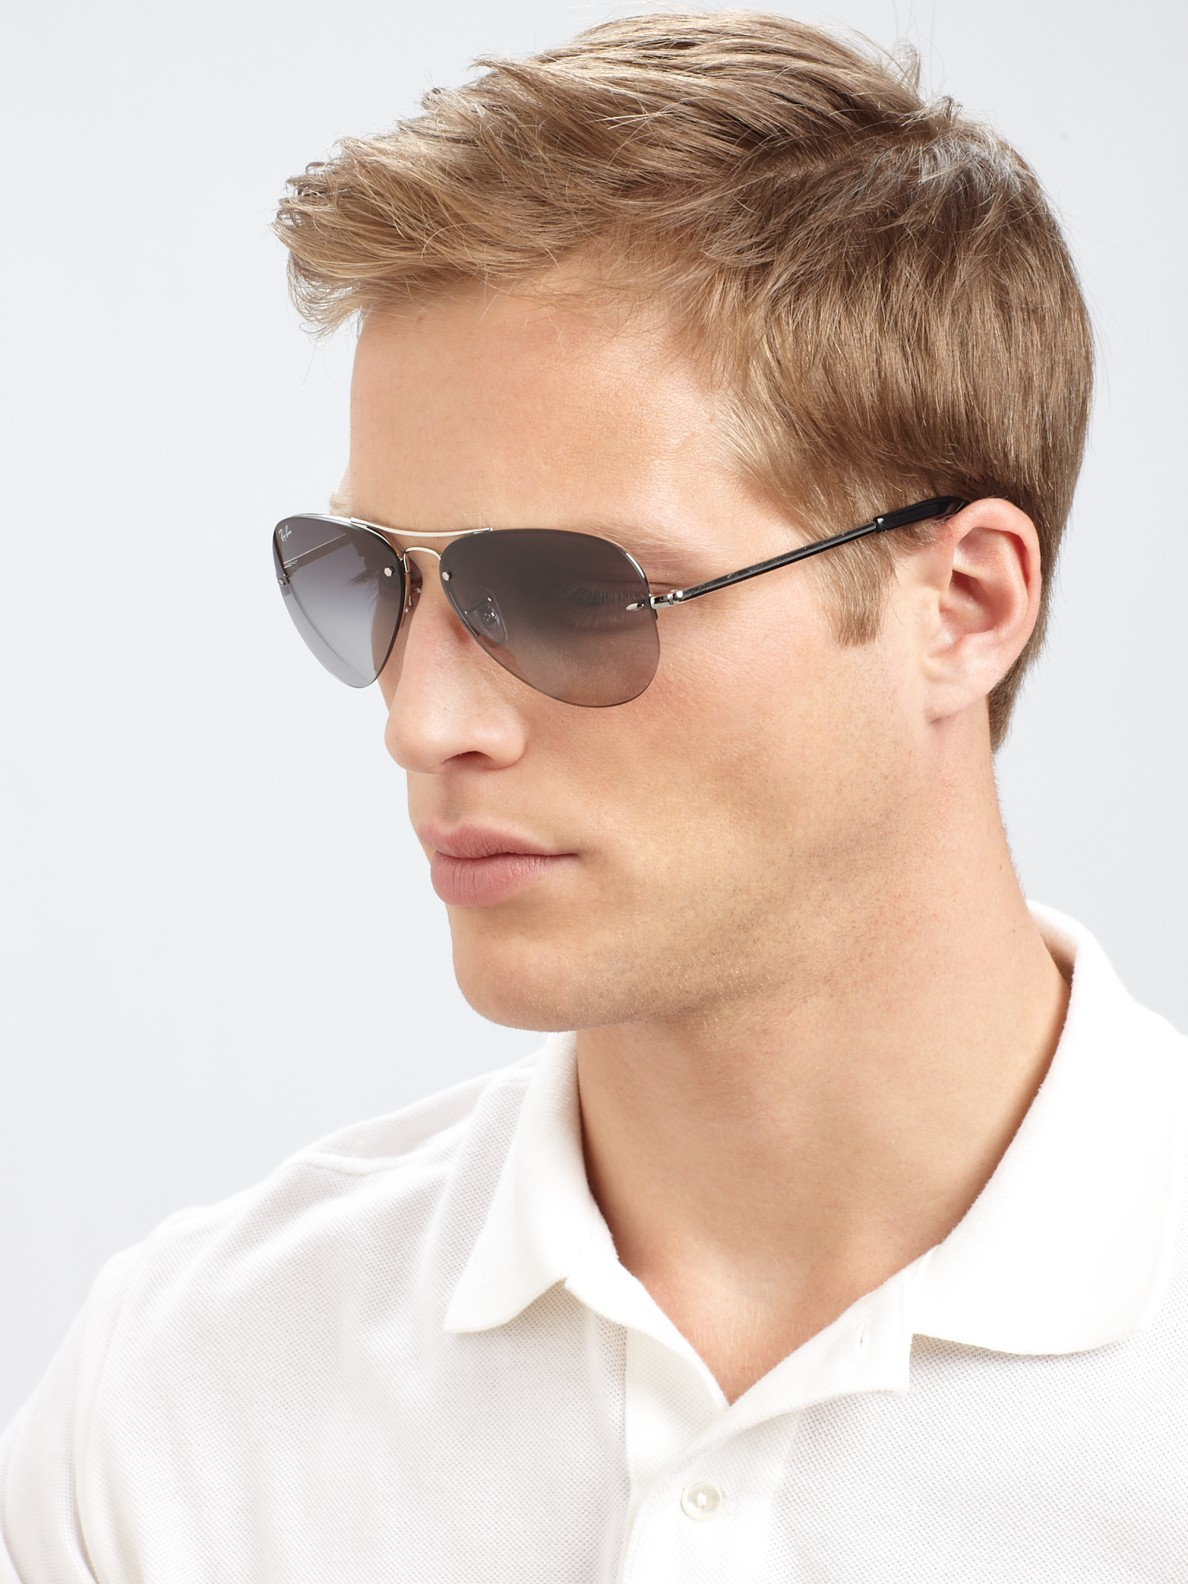 Ray Ban Aviators Men